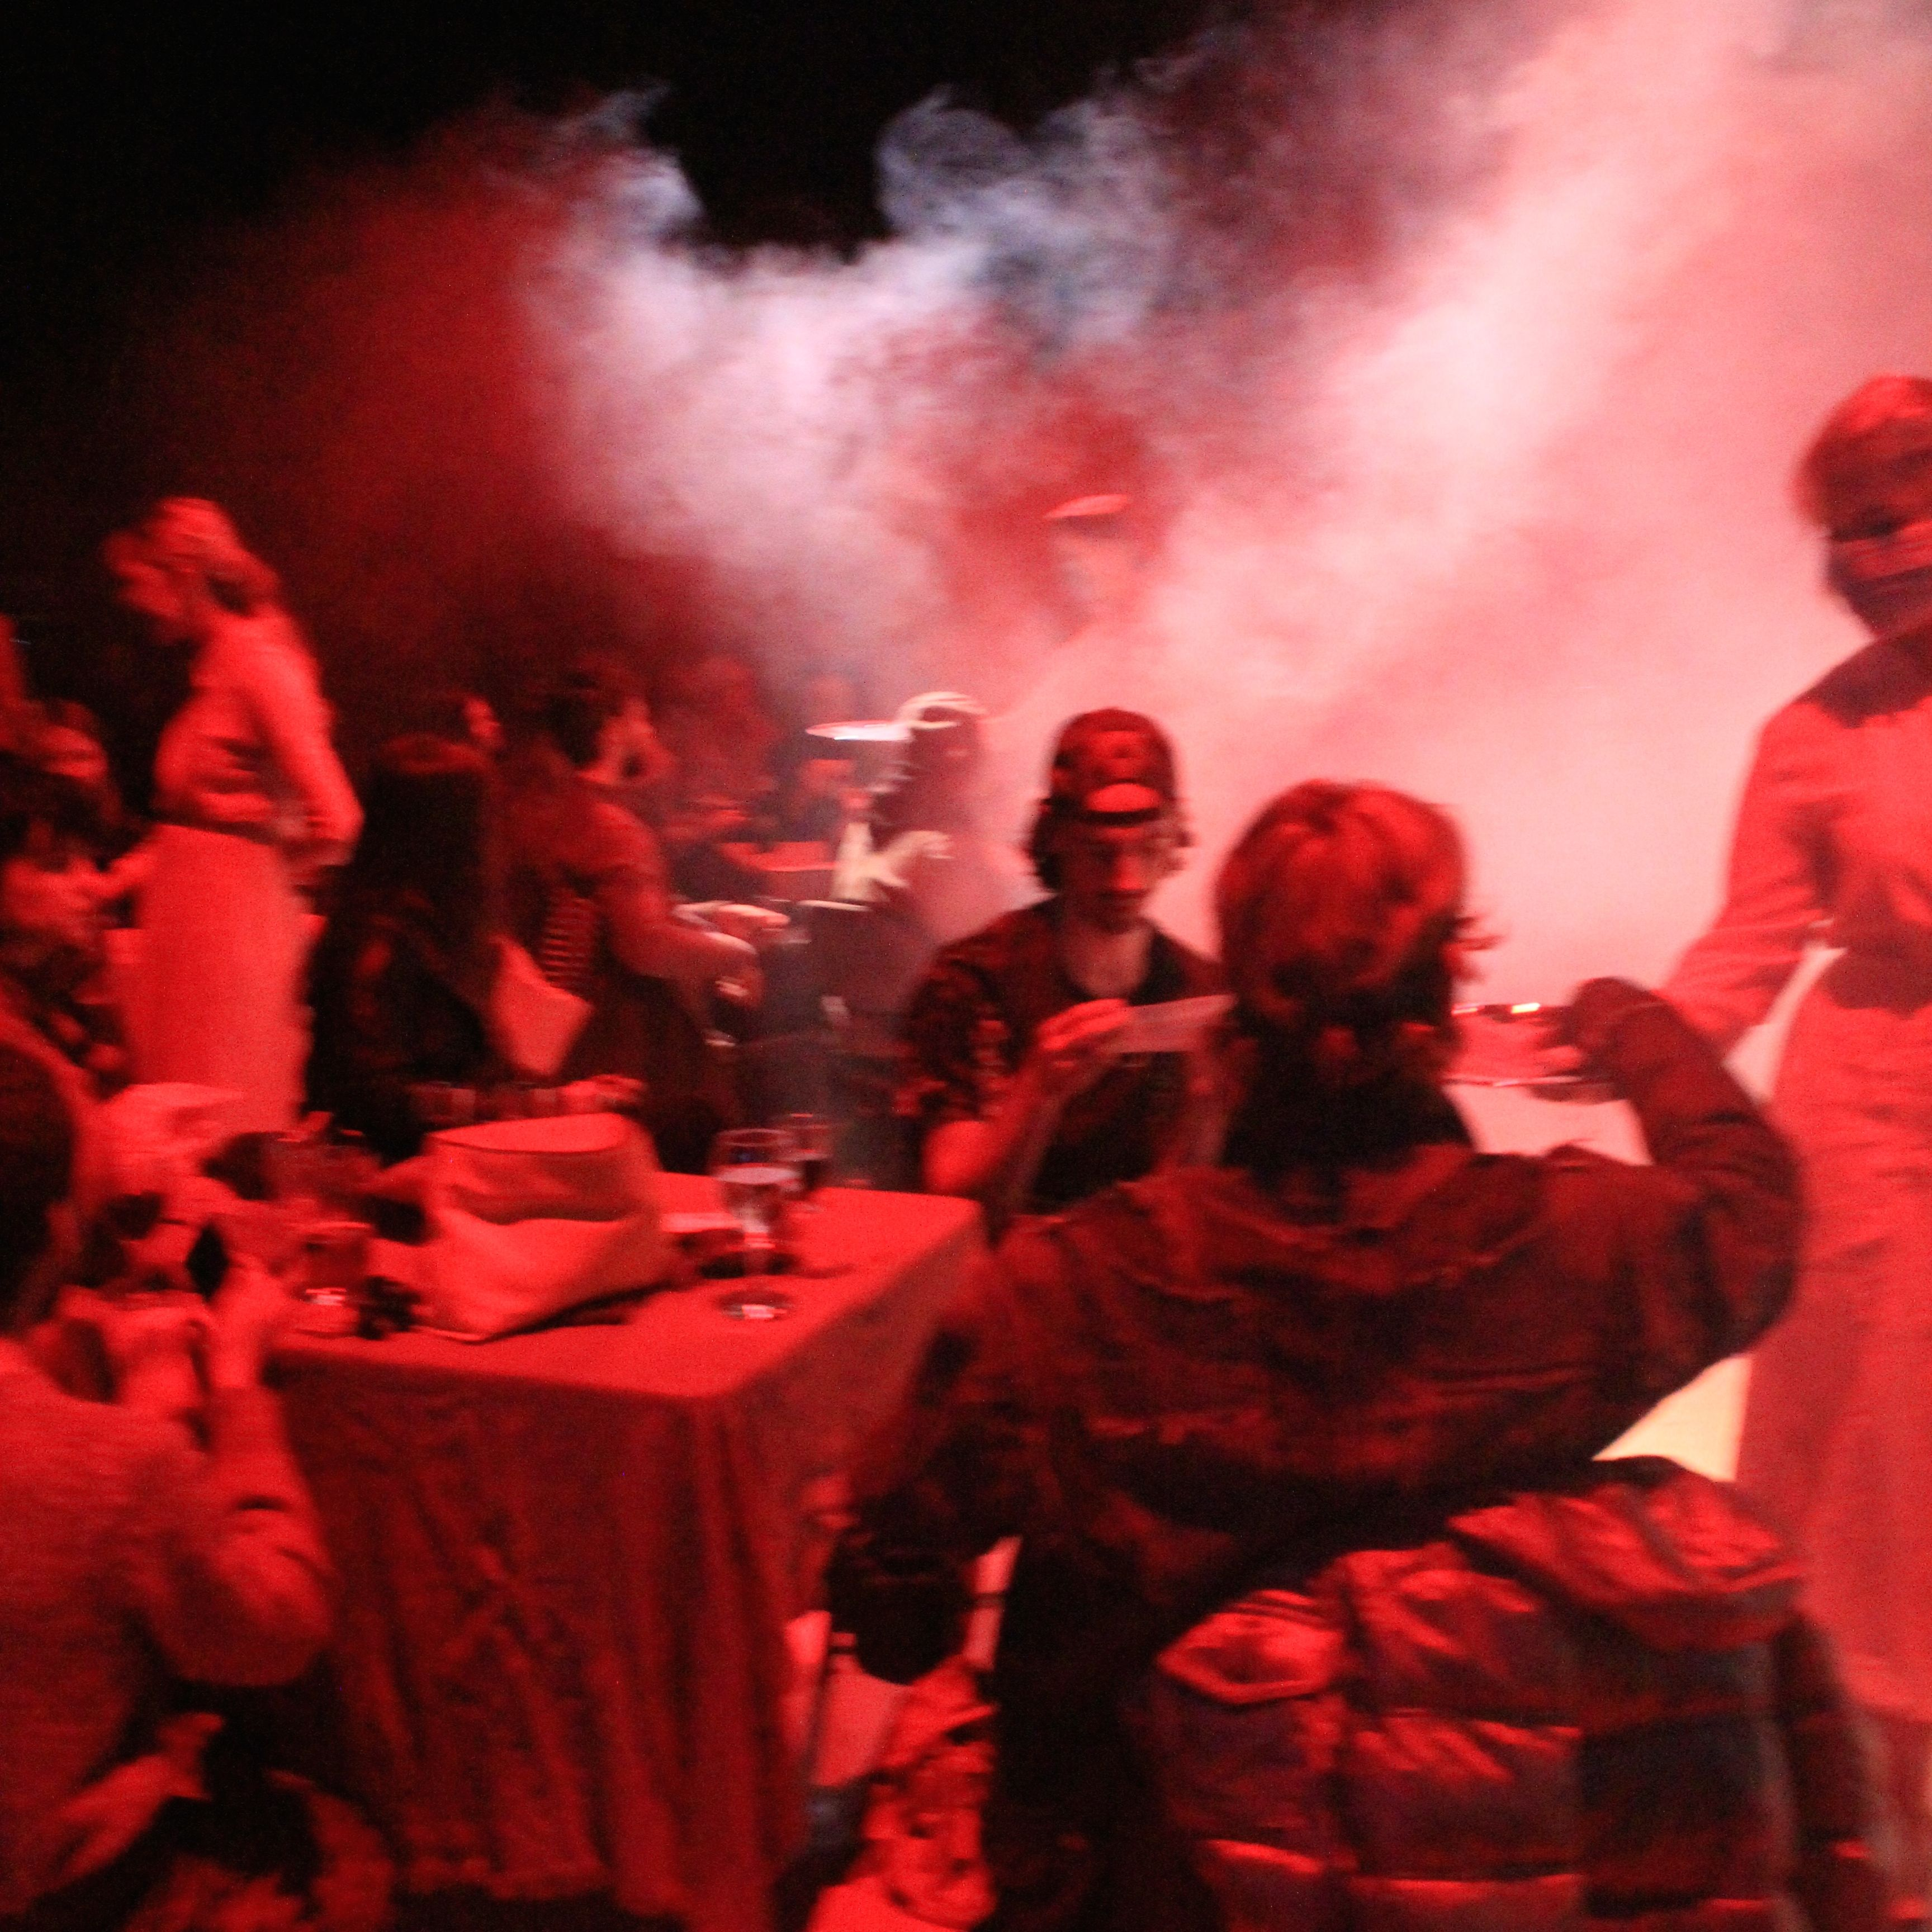 People sittign and standing in a red-lit room full of dry ice